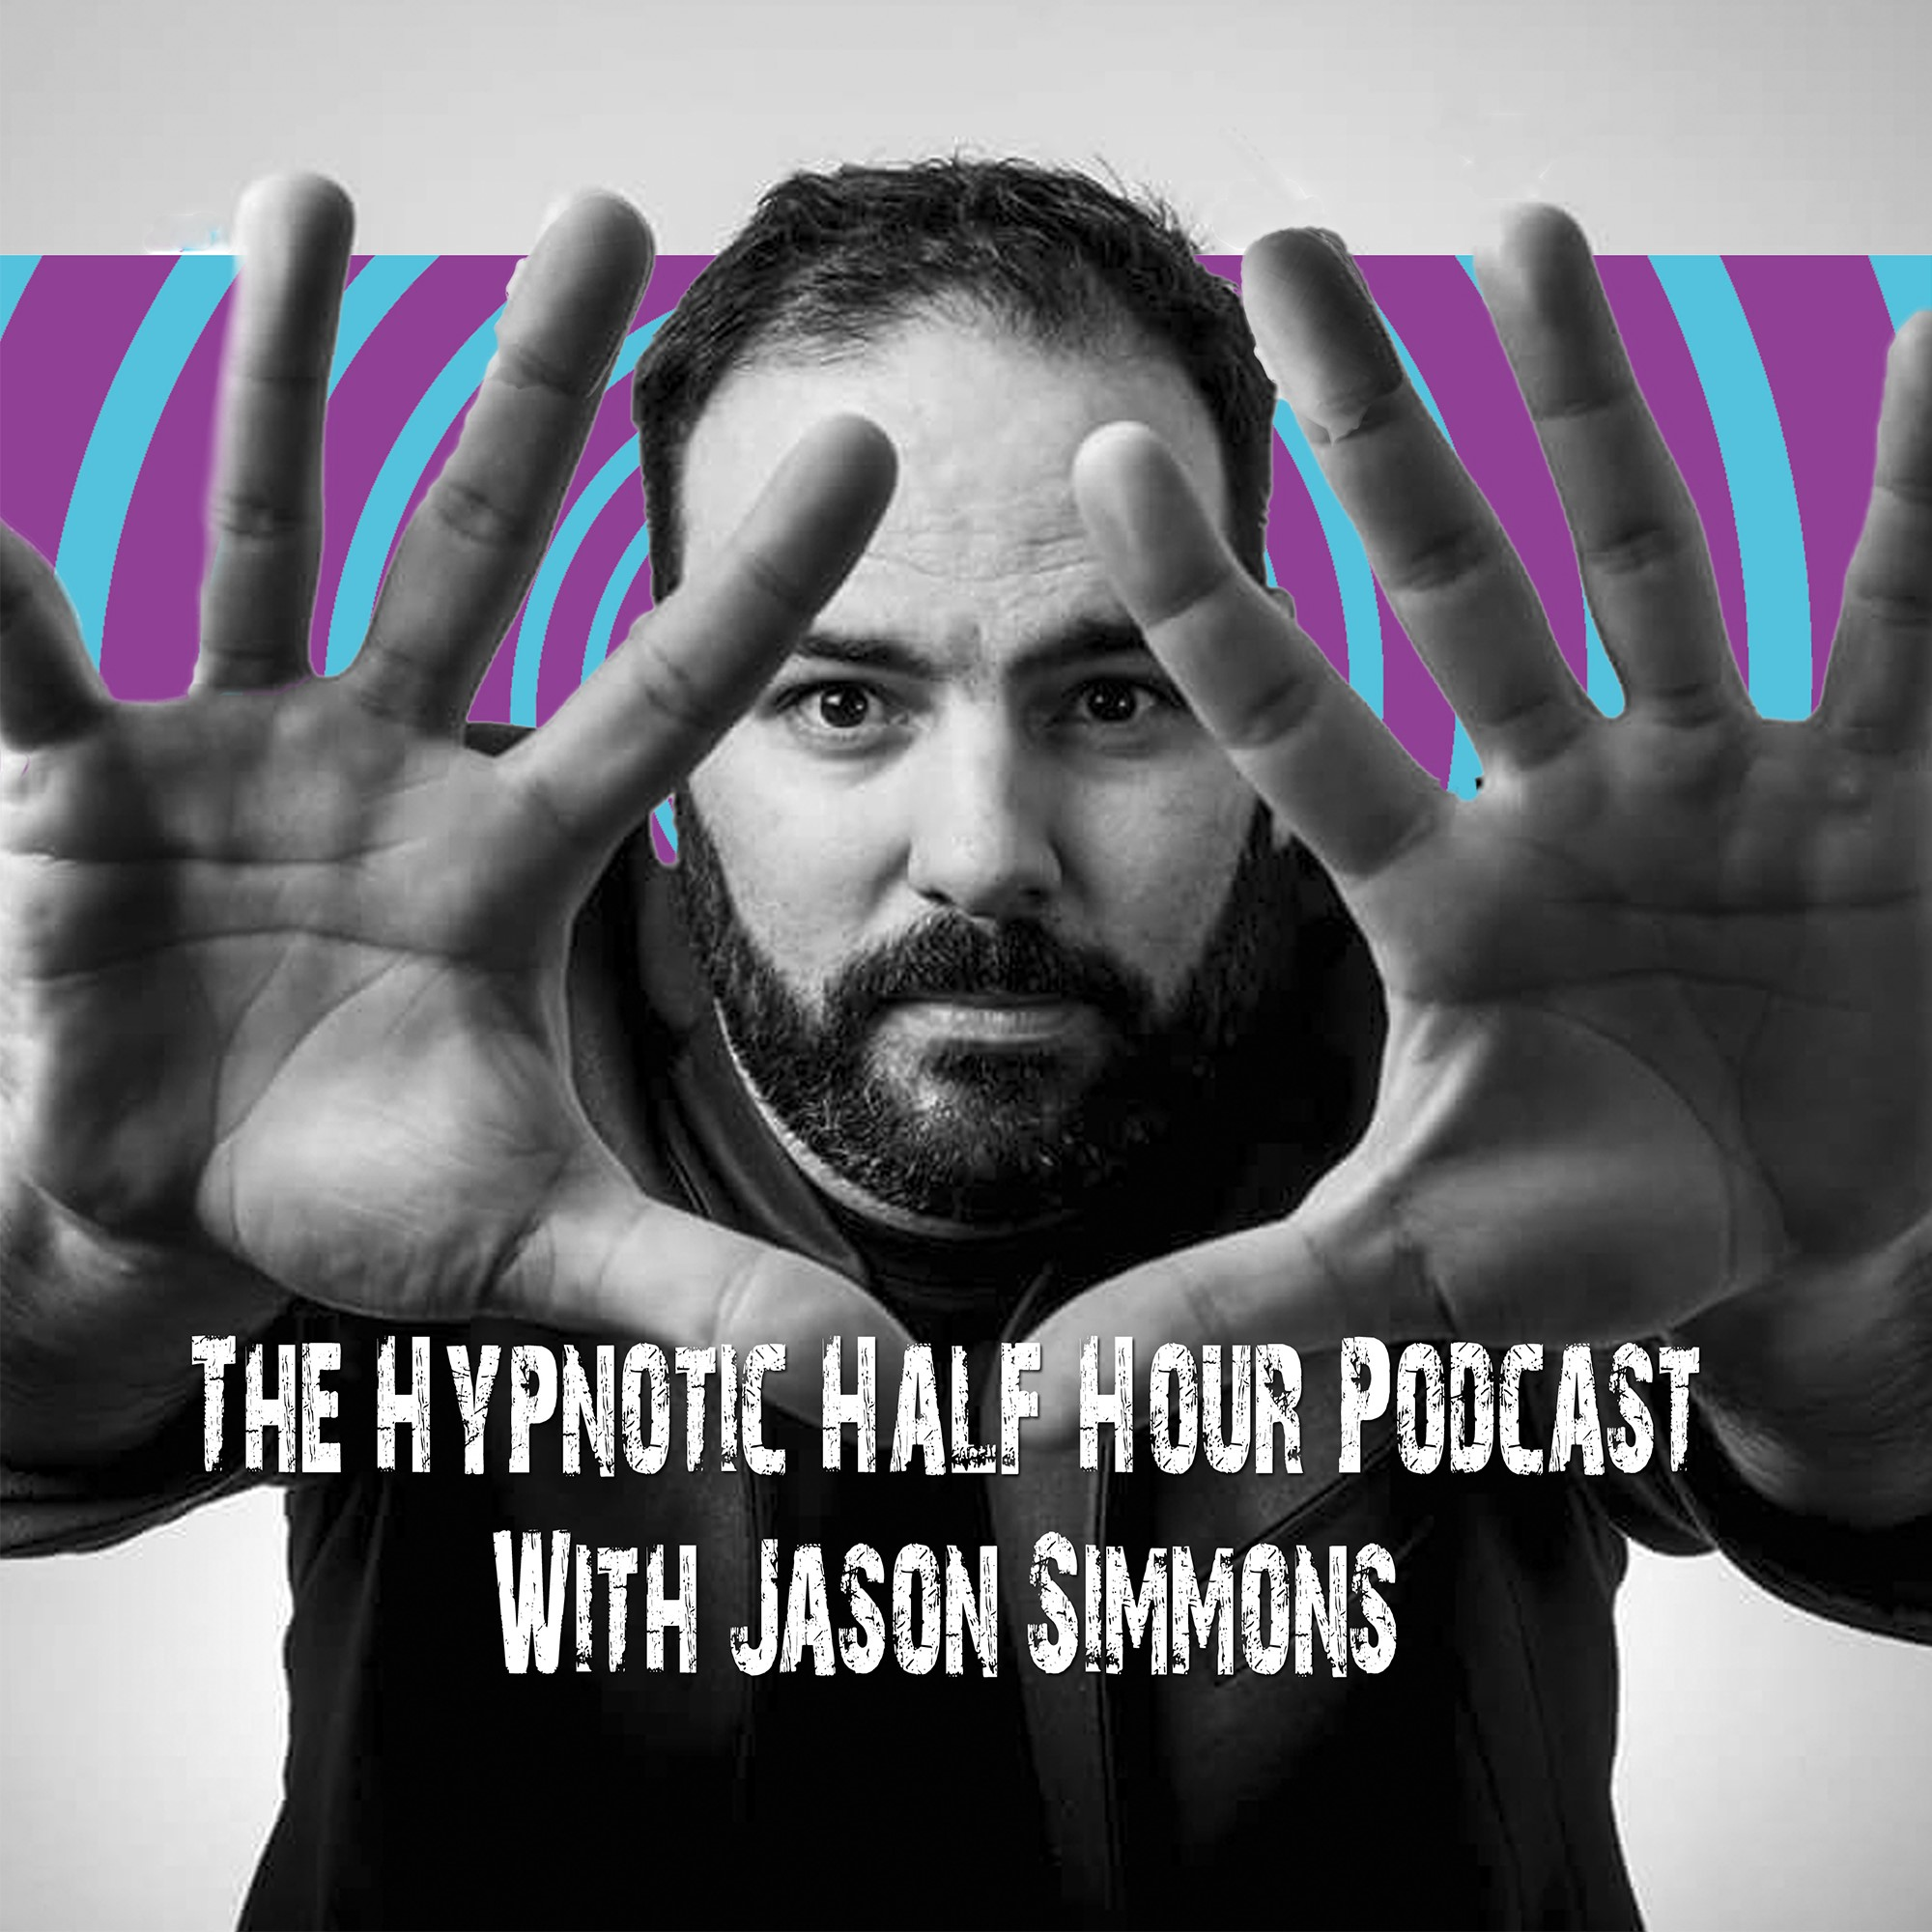 The Hypnotic Half Hour Podcast With Jason Simmons